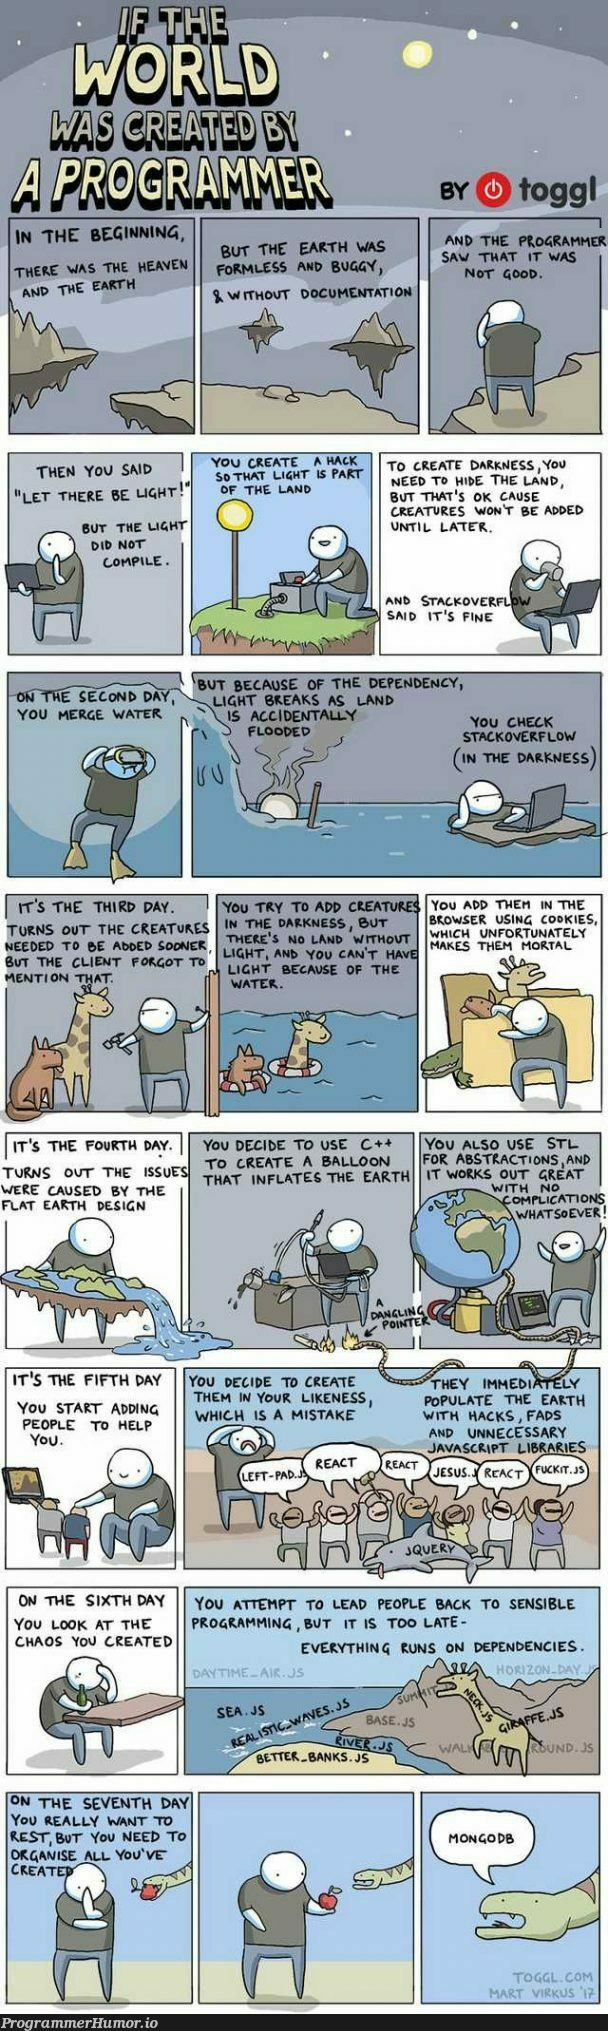 If the world was created by a Programmer. | programming-memes, programmer-memes, javascript-memes, java-memes, design-memes, stackoverflow-memes, stack-memes, program-memes, c++-memes, bug-memes, mongodb-memes, rest-memes, cli-memes, mongo-memes, overflow-memes, IT-memes, ide-memes, ML-memes, documentation-memes, dependencies-memes, dependency-memes | ProgrammerHumor.io